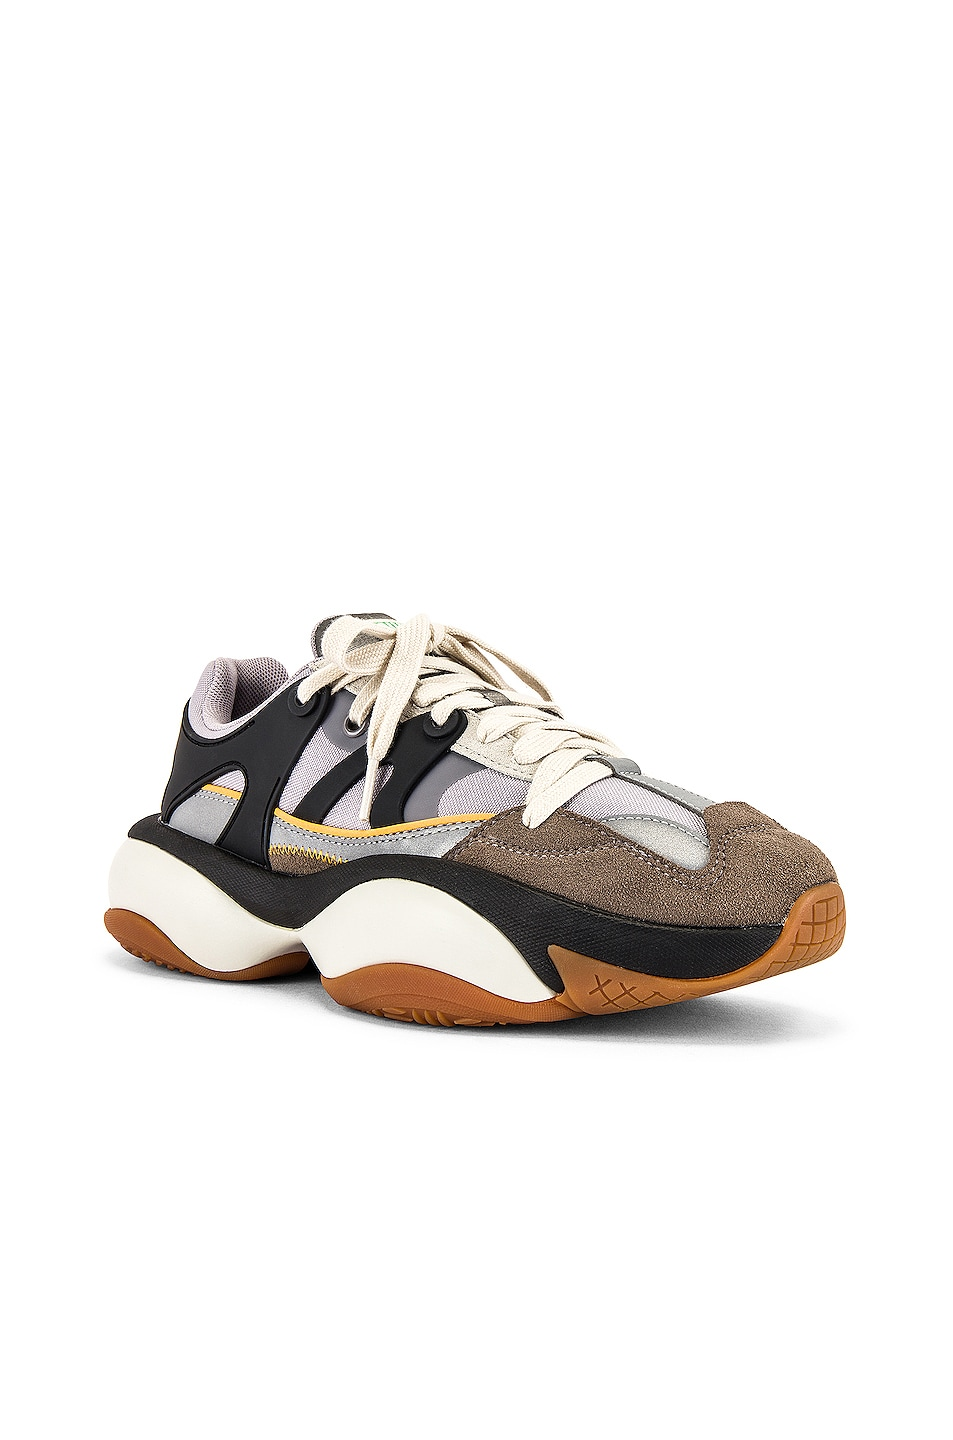 Image 1 of Puma Select x Rhude Alteration NU in Steel Gray & Drizzle